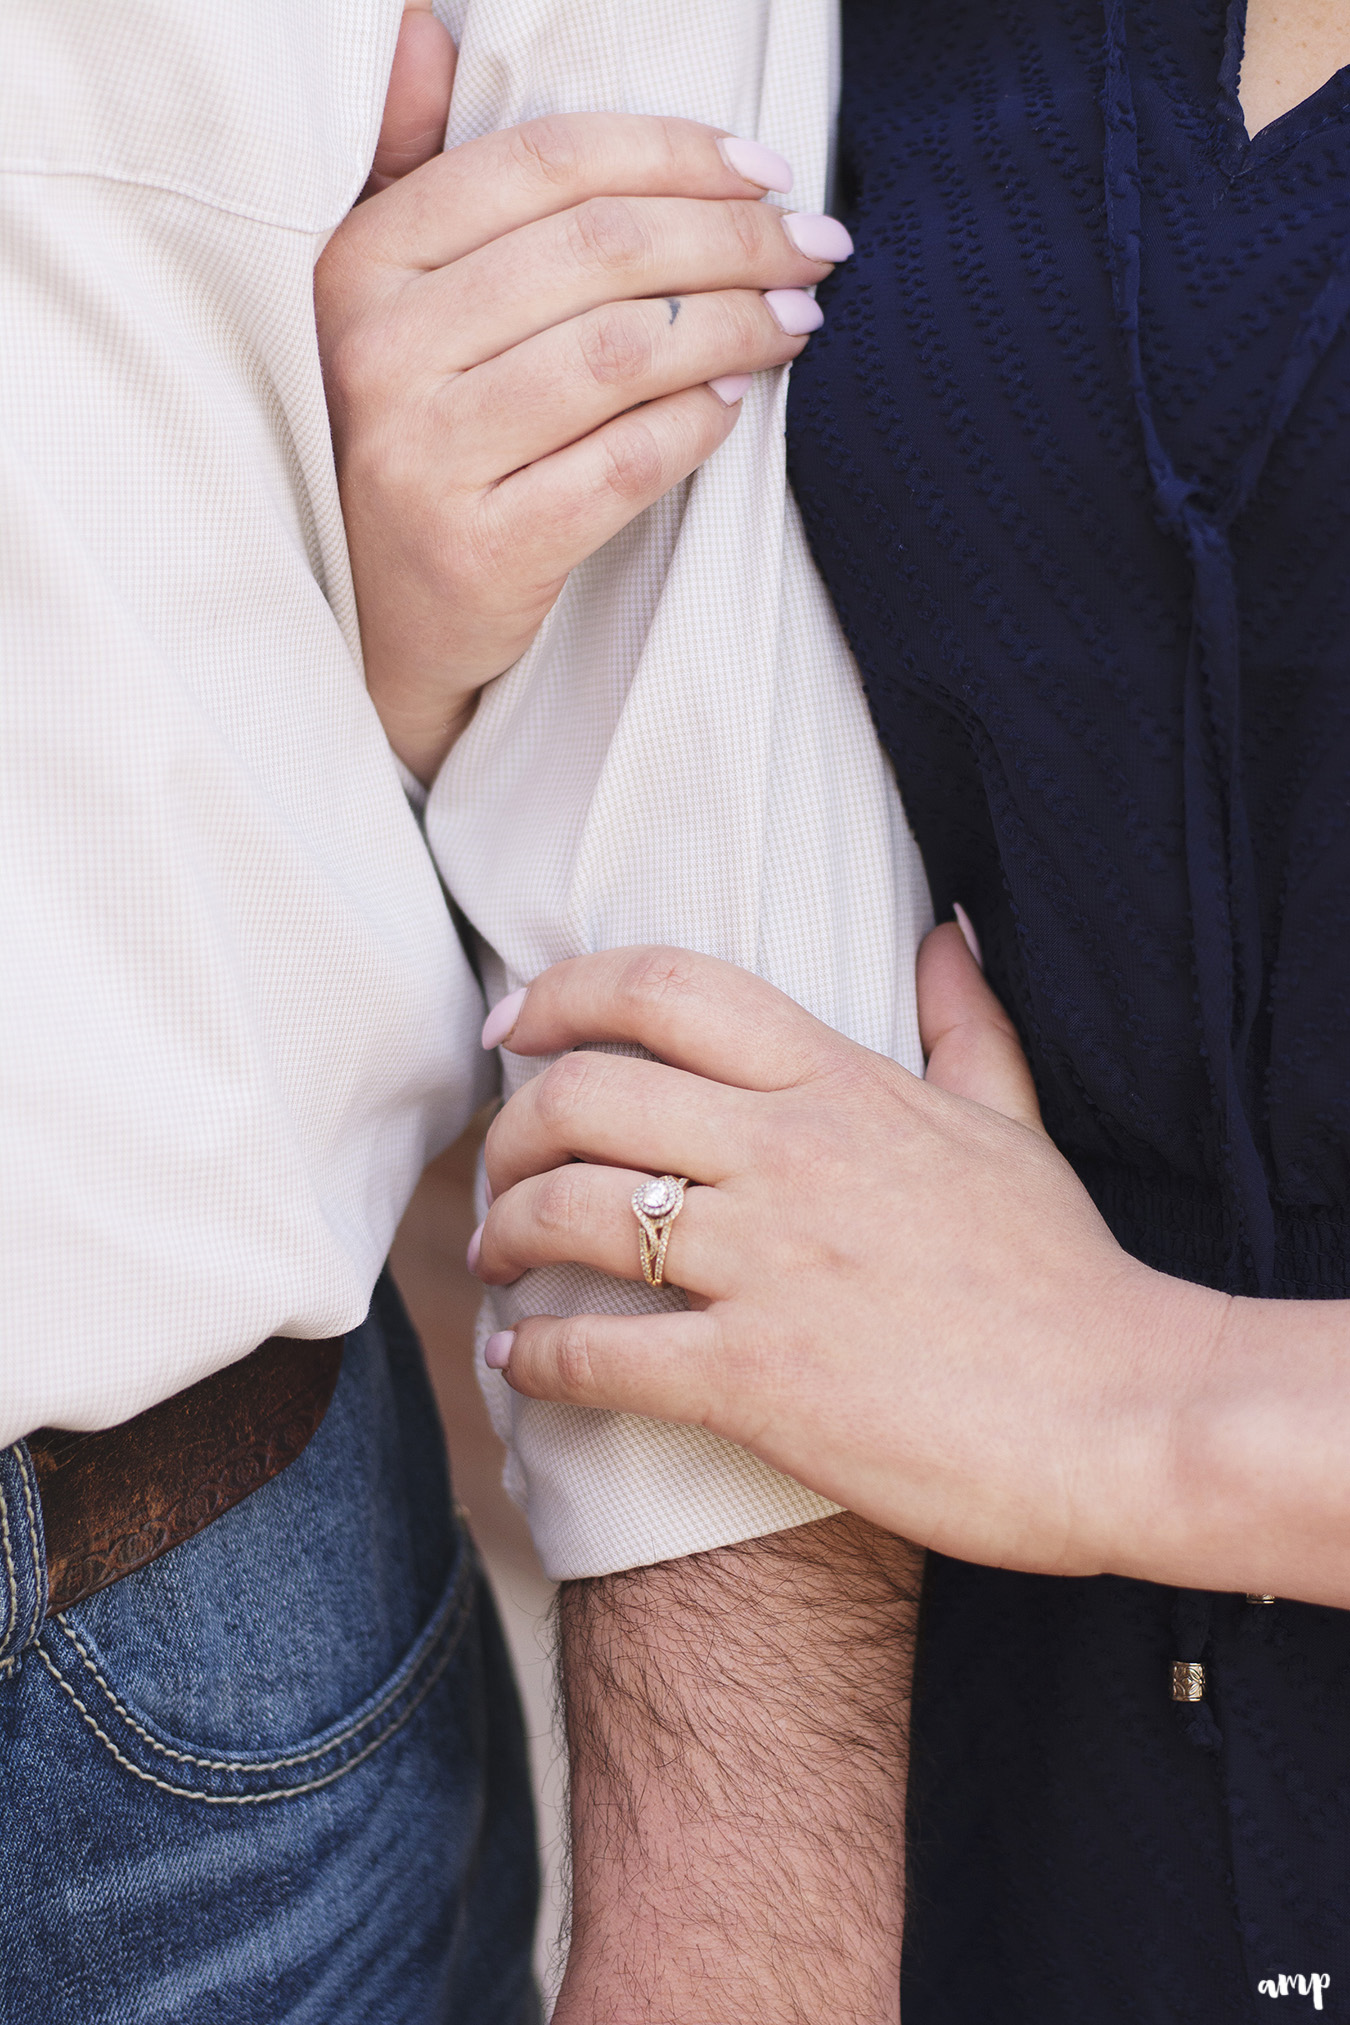 A Few of My Favorite Rings | engagement session inspiration by amanda.matilda.photography